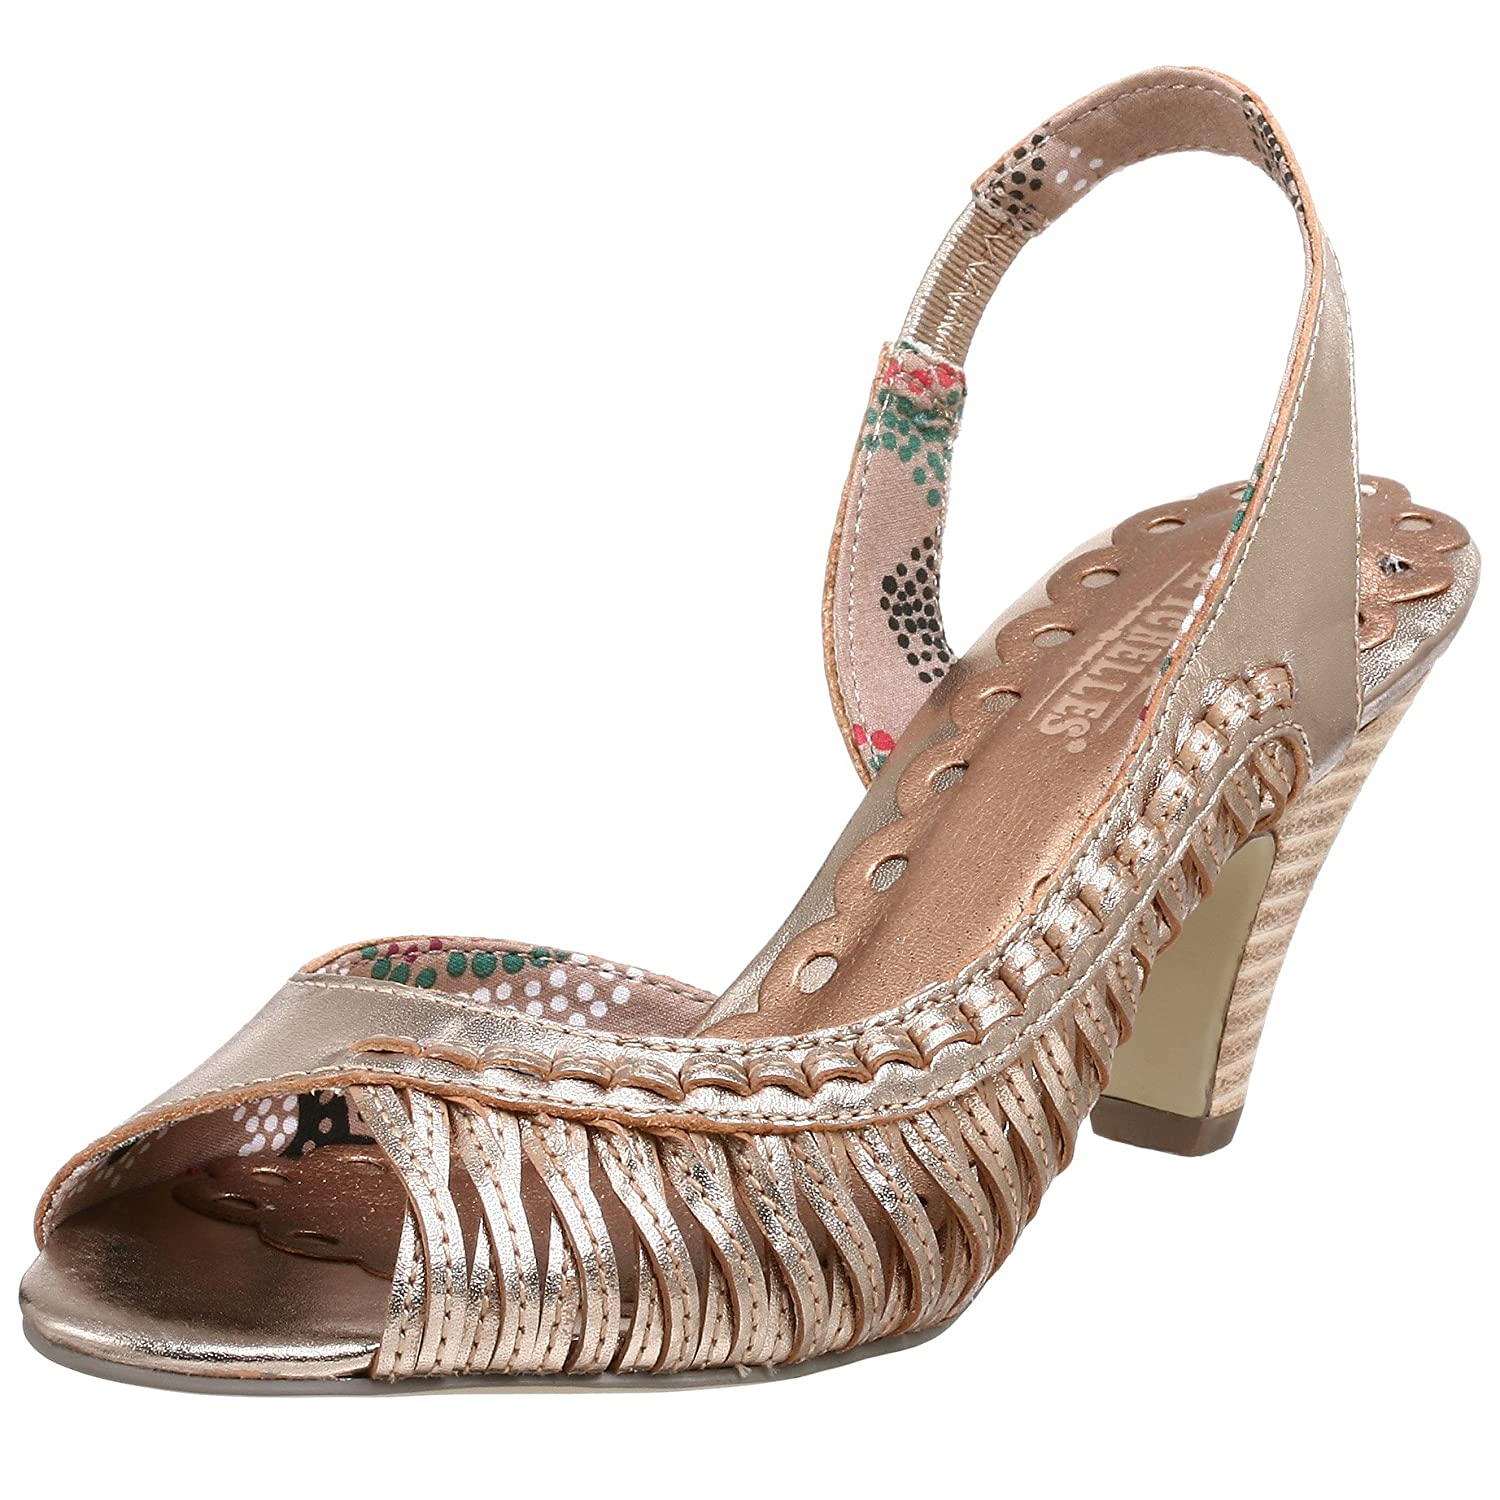 Seychelles Shanti Slingback - Free Overnight Shipping & Return Shipping: Endless.com from endless.com